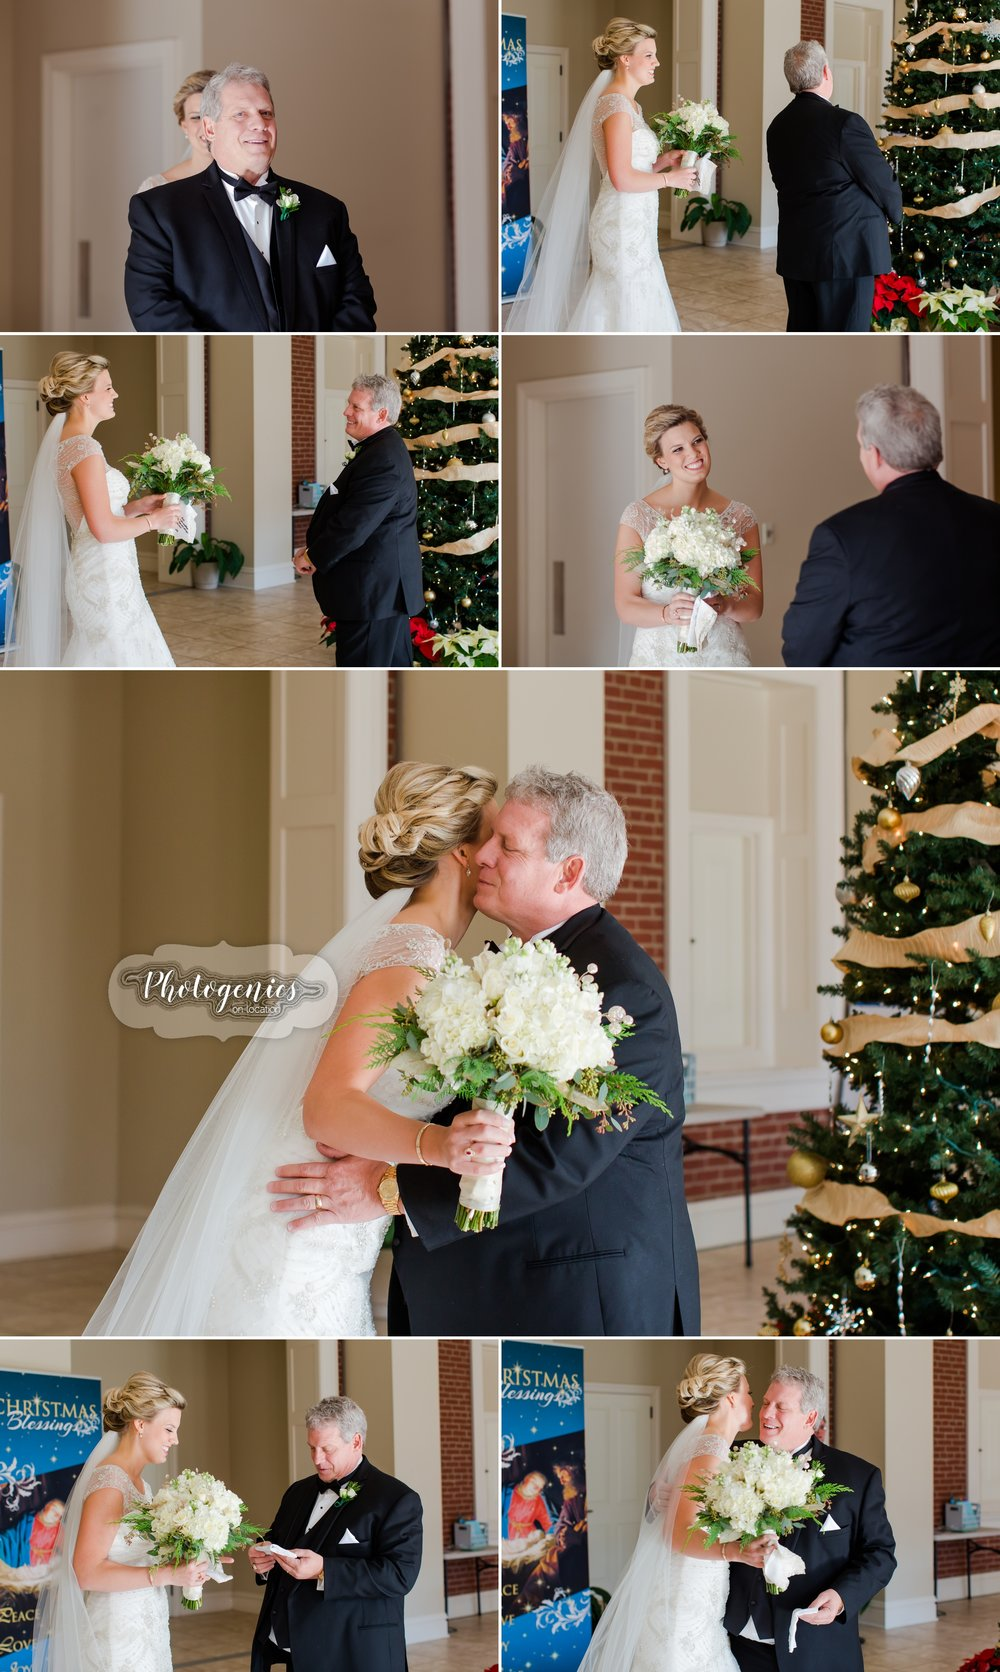 nye_wedding_new_years_eve_night_photography_bridal_details_ideas_planning_getting_ready_first_look_dad_bride